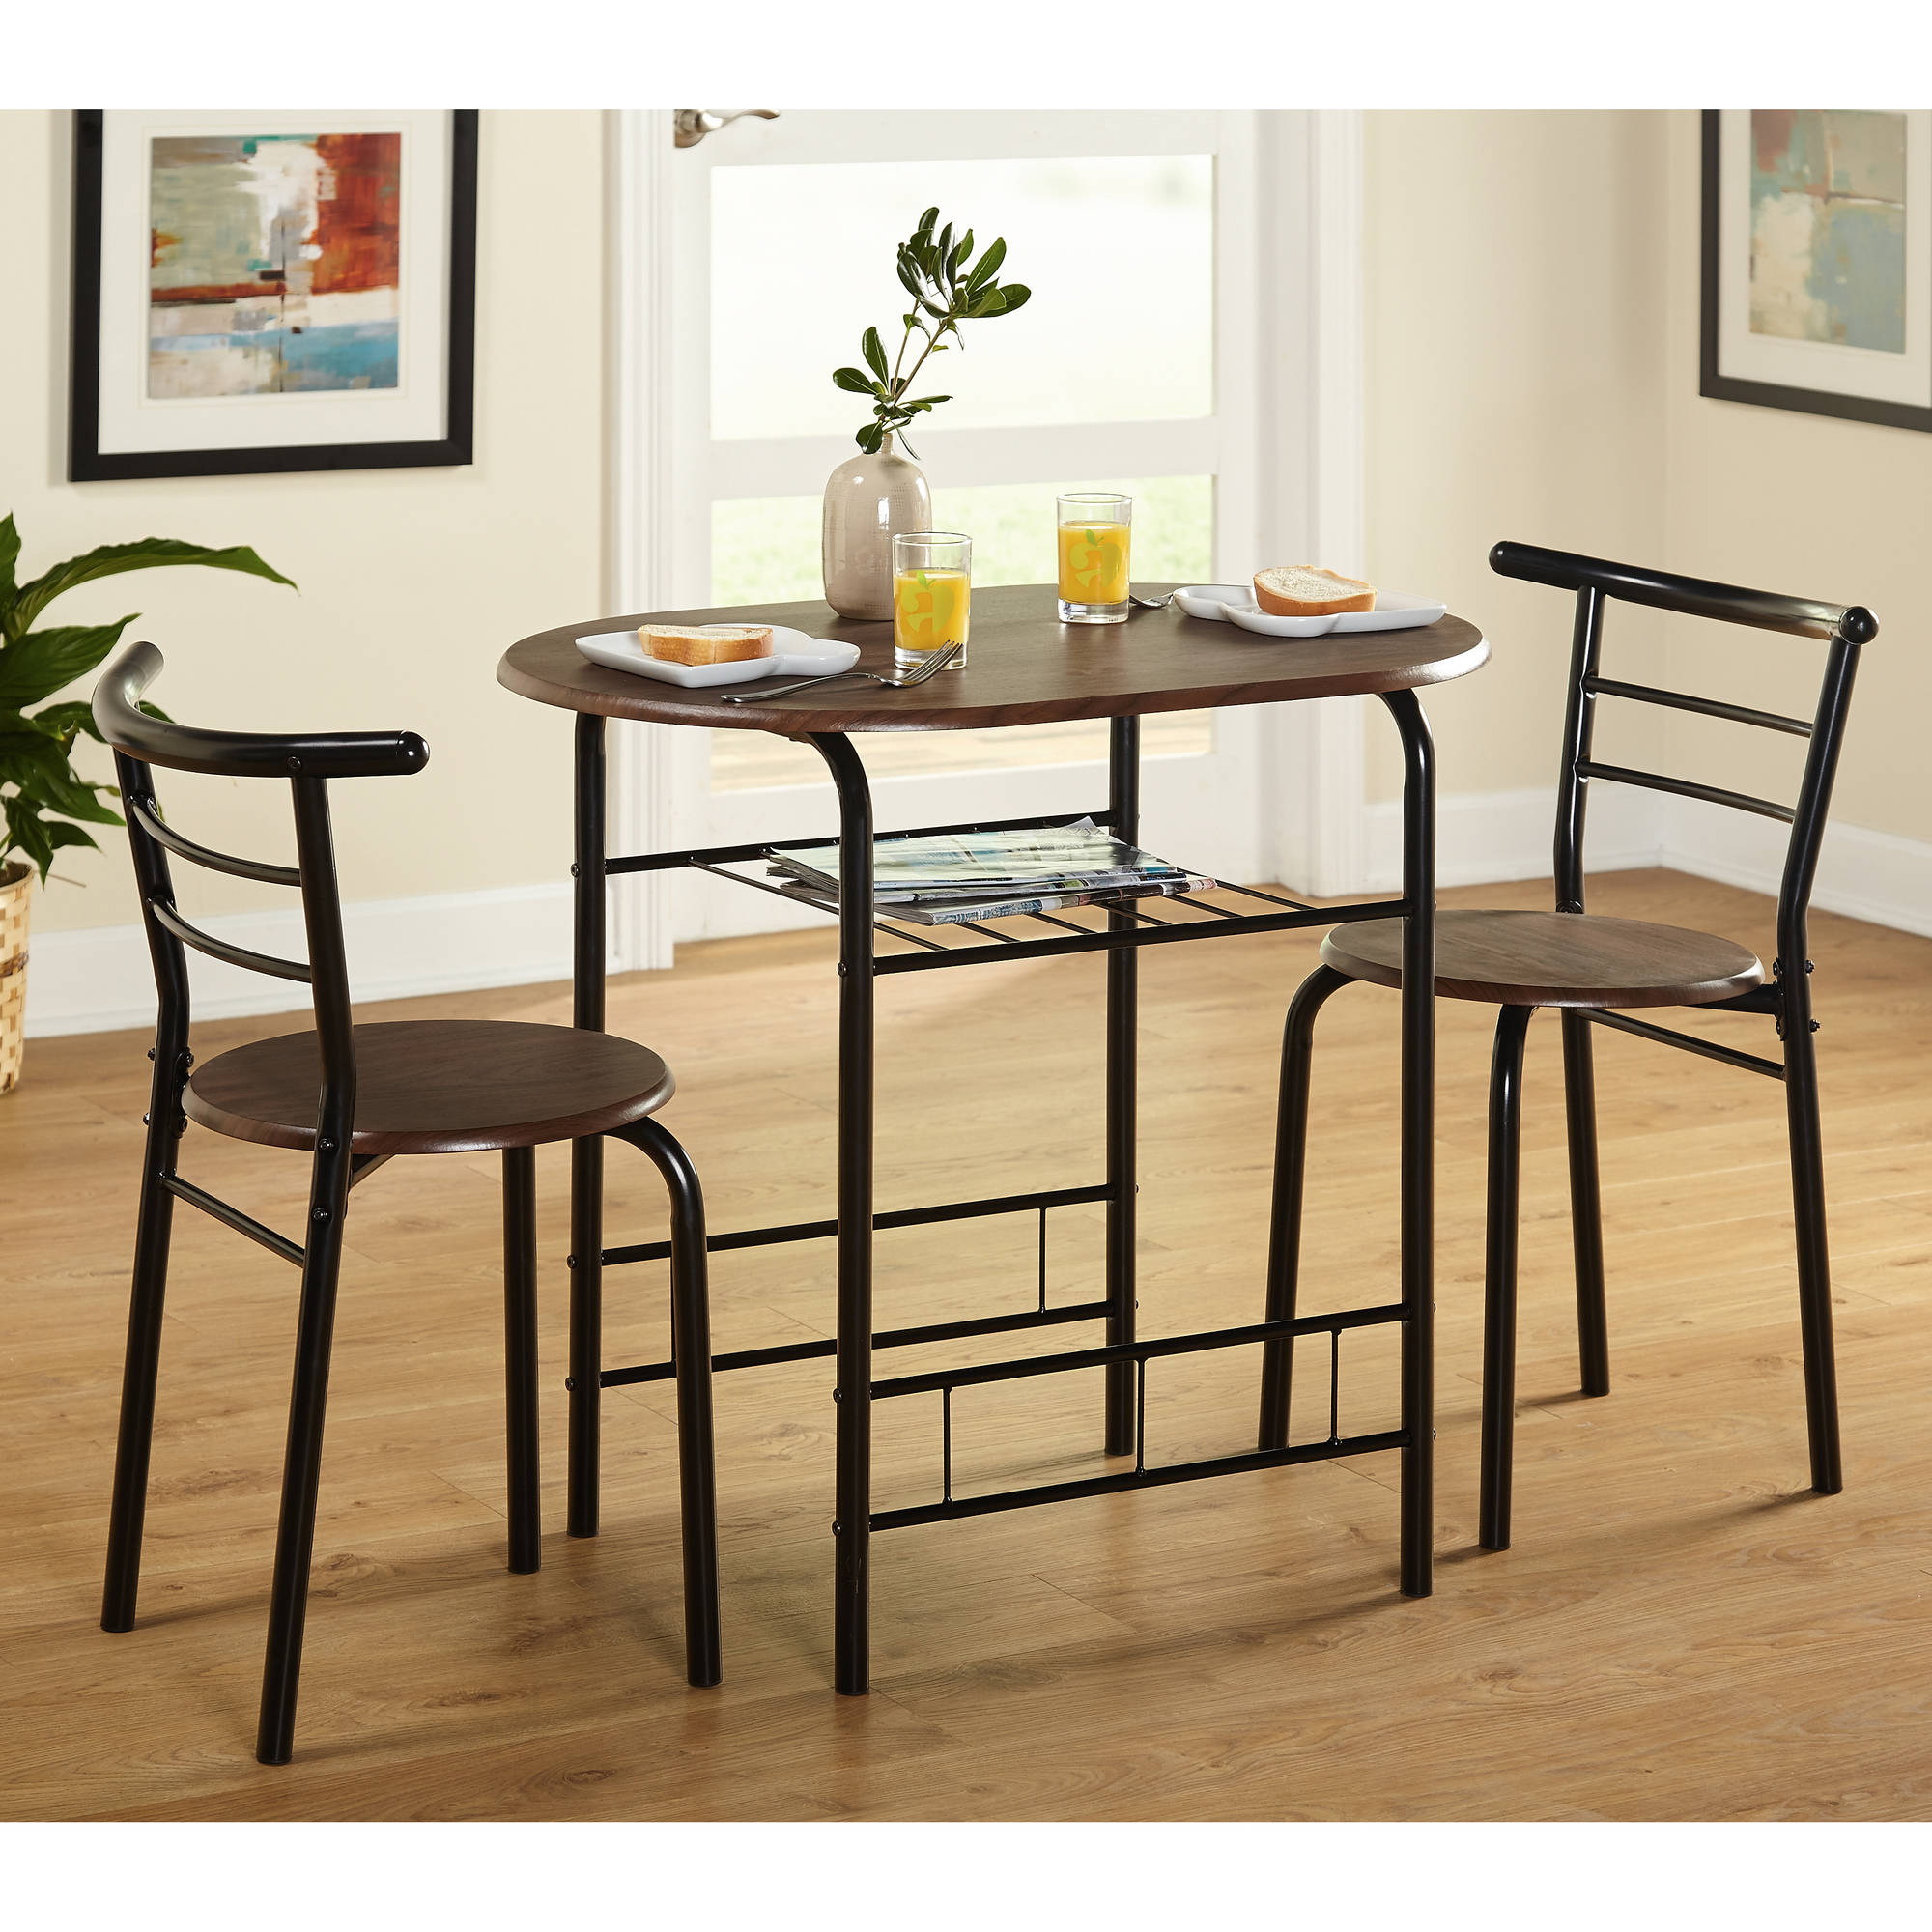 Trendy 3 Piece Dining Sets Pertaining To Tms 3 Piece Bistro Dining Set – Walmart (#17 of 20)